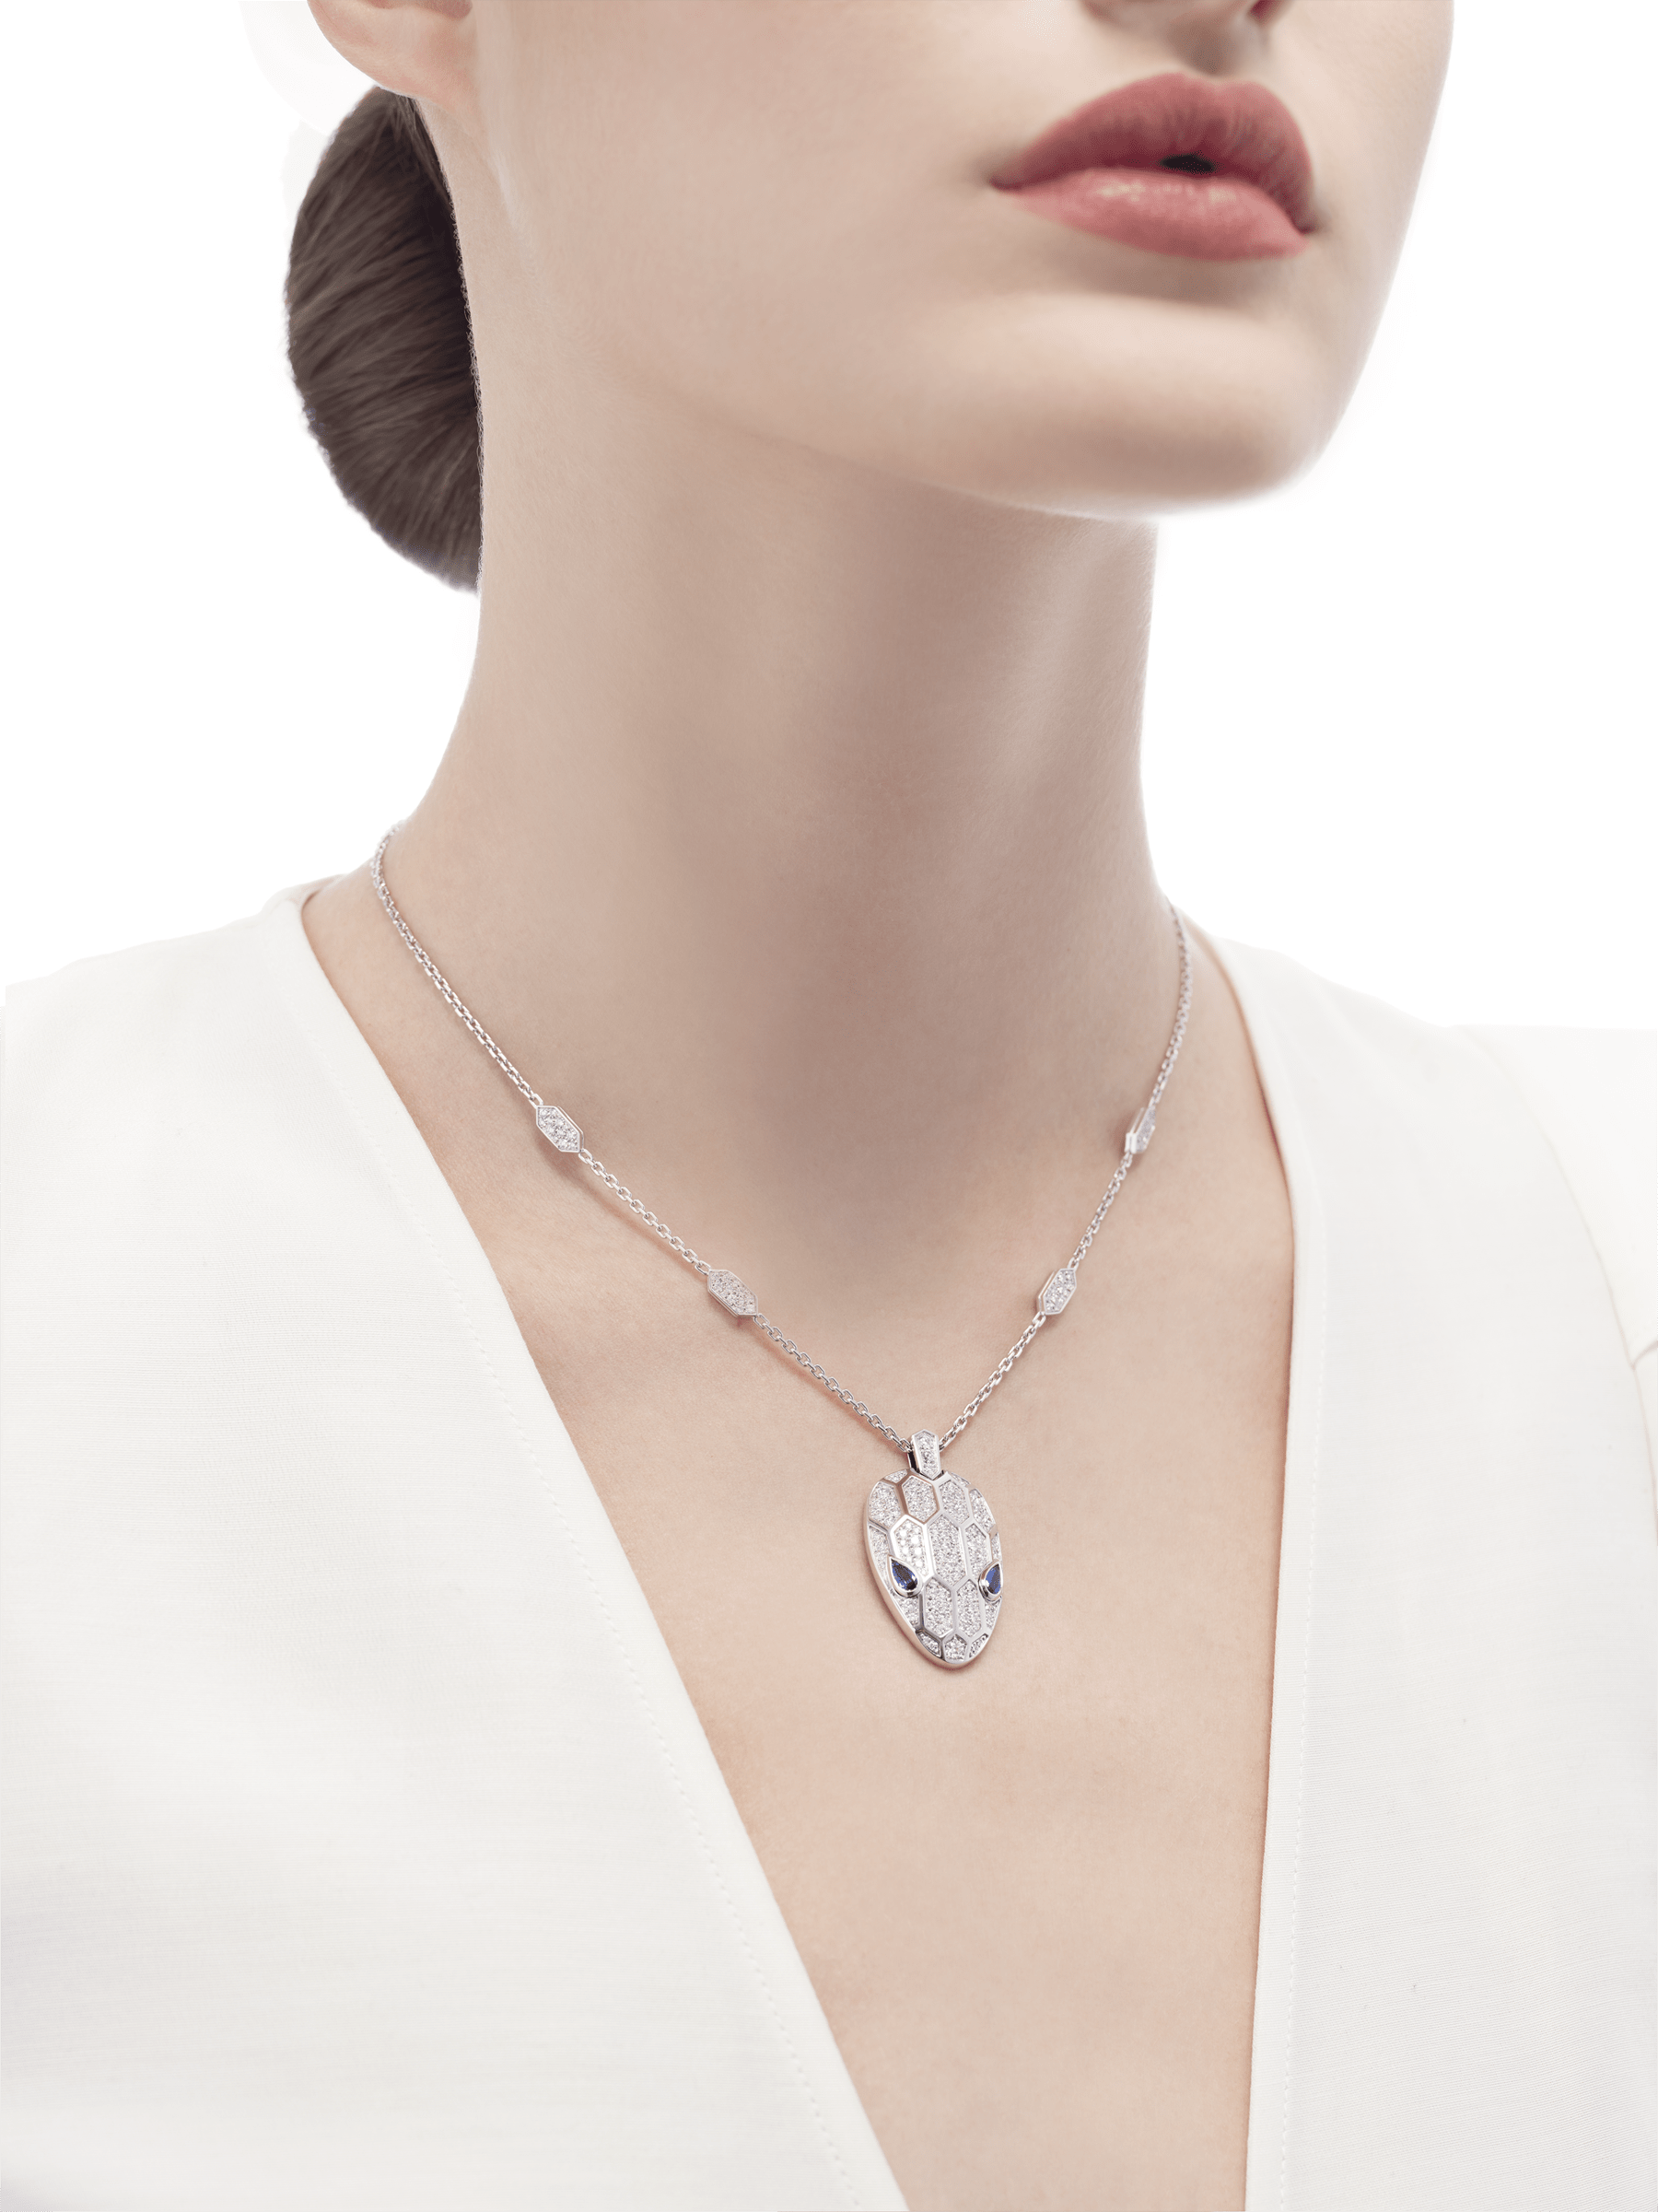 Serpenti necklace in 18 kt white gold set with blue sapphire eyes (0.78 ct) and pavé diamonds (2.16 ct) on both the chain and the pendant. 353529 image 4